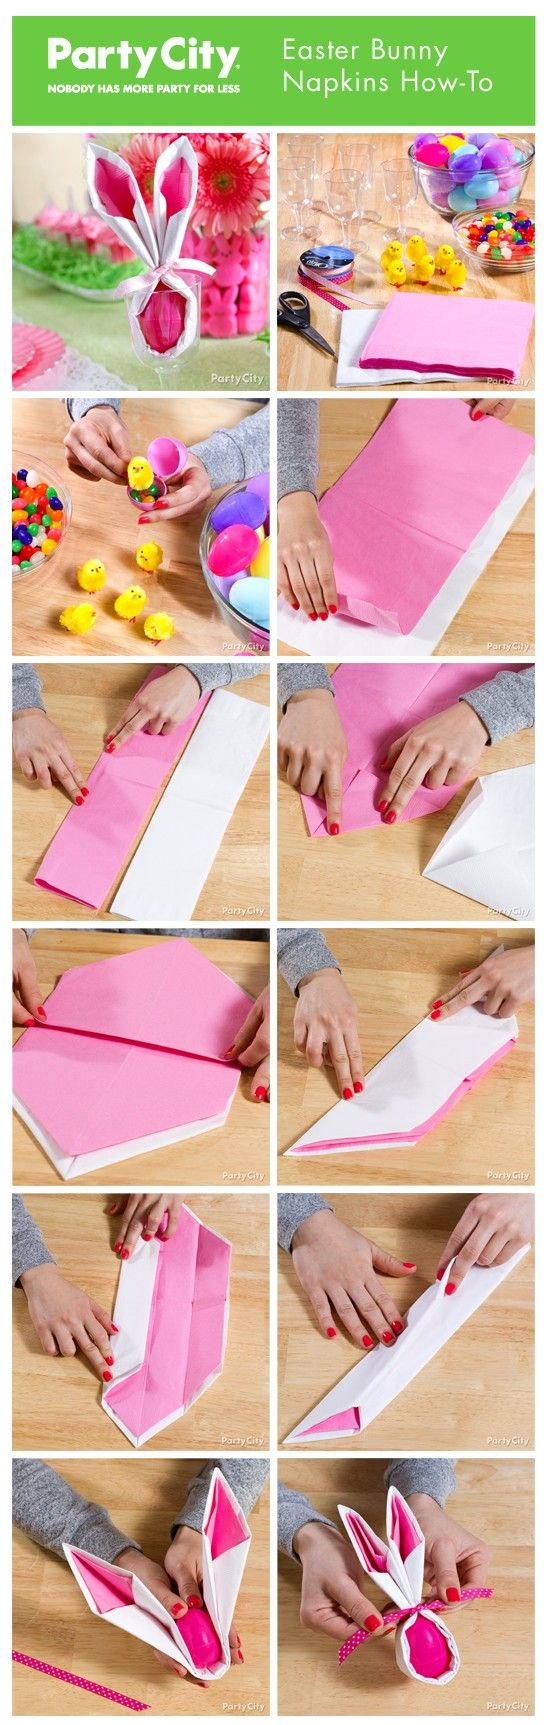 How to make adorable pink and white Easter bunny napkins that double as candy favors! Click for tutorial with step by step how-to photos.